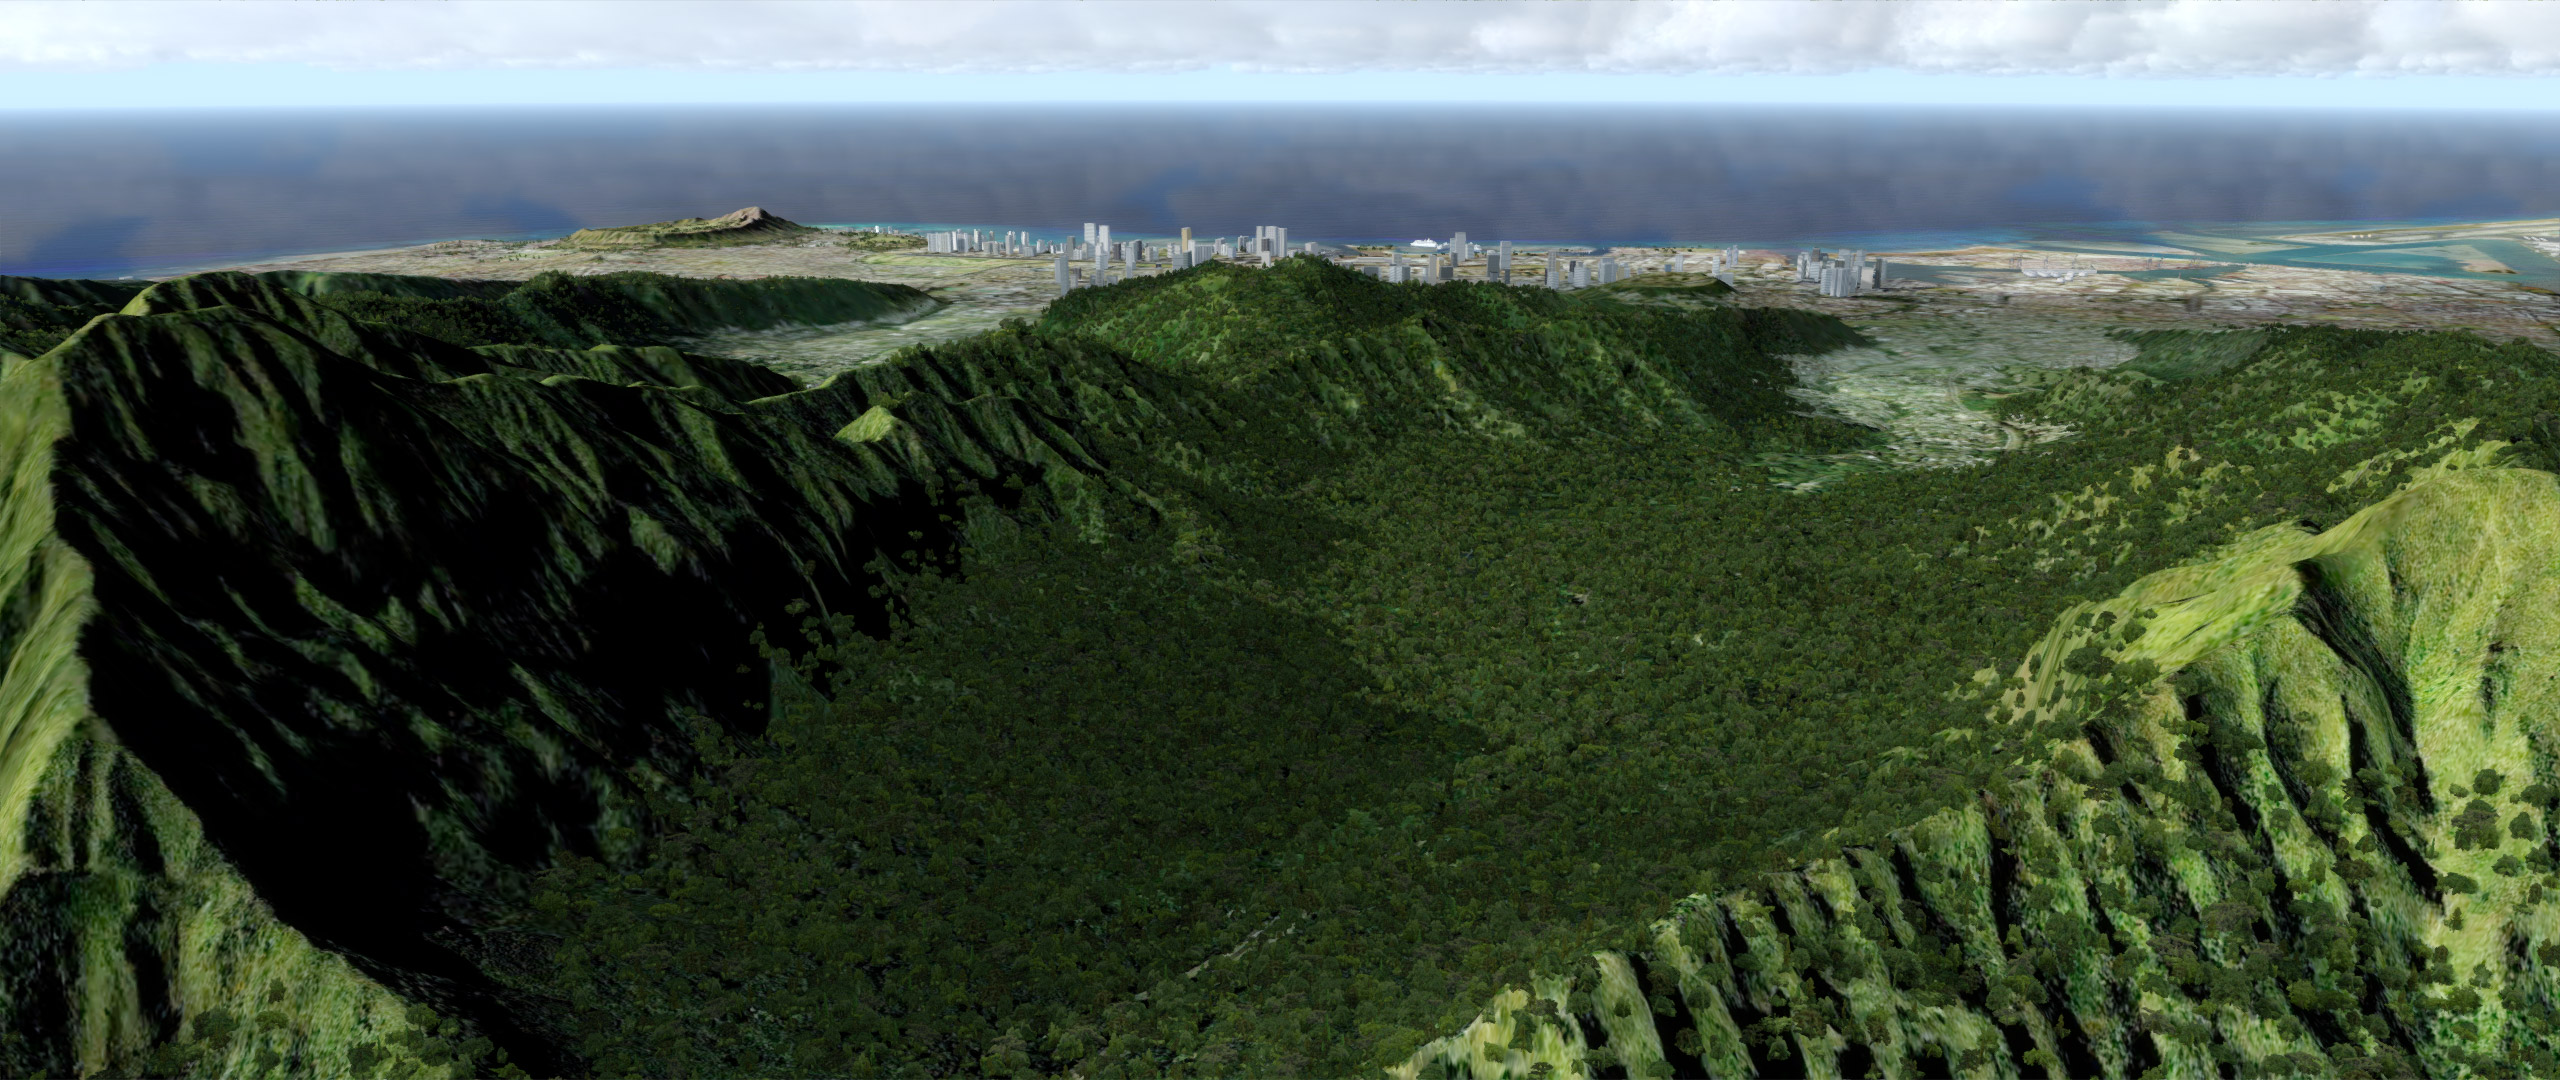 Hawaii autogen vegetation (BETA) for FSX and Prepar3D... ready! 1